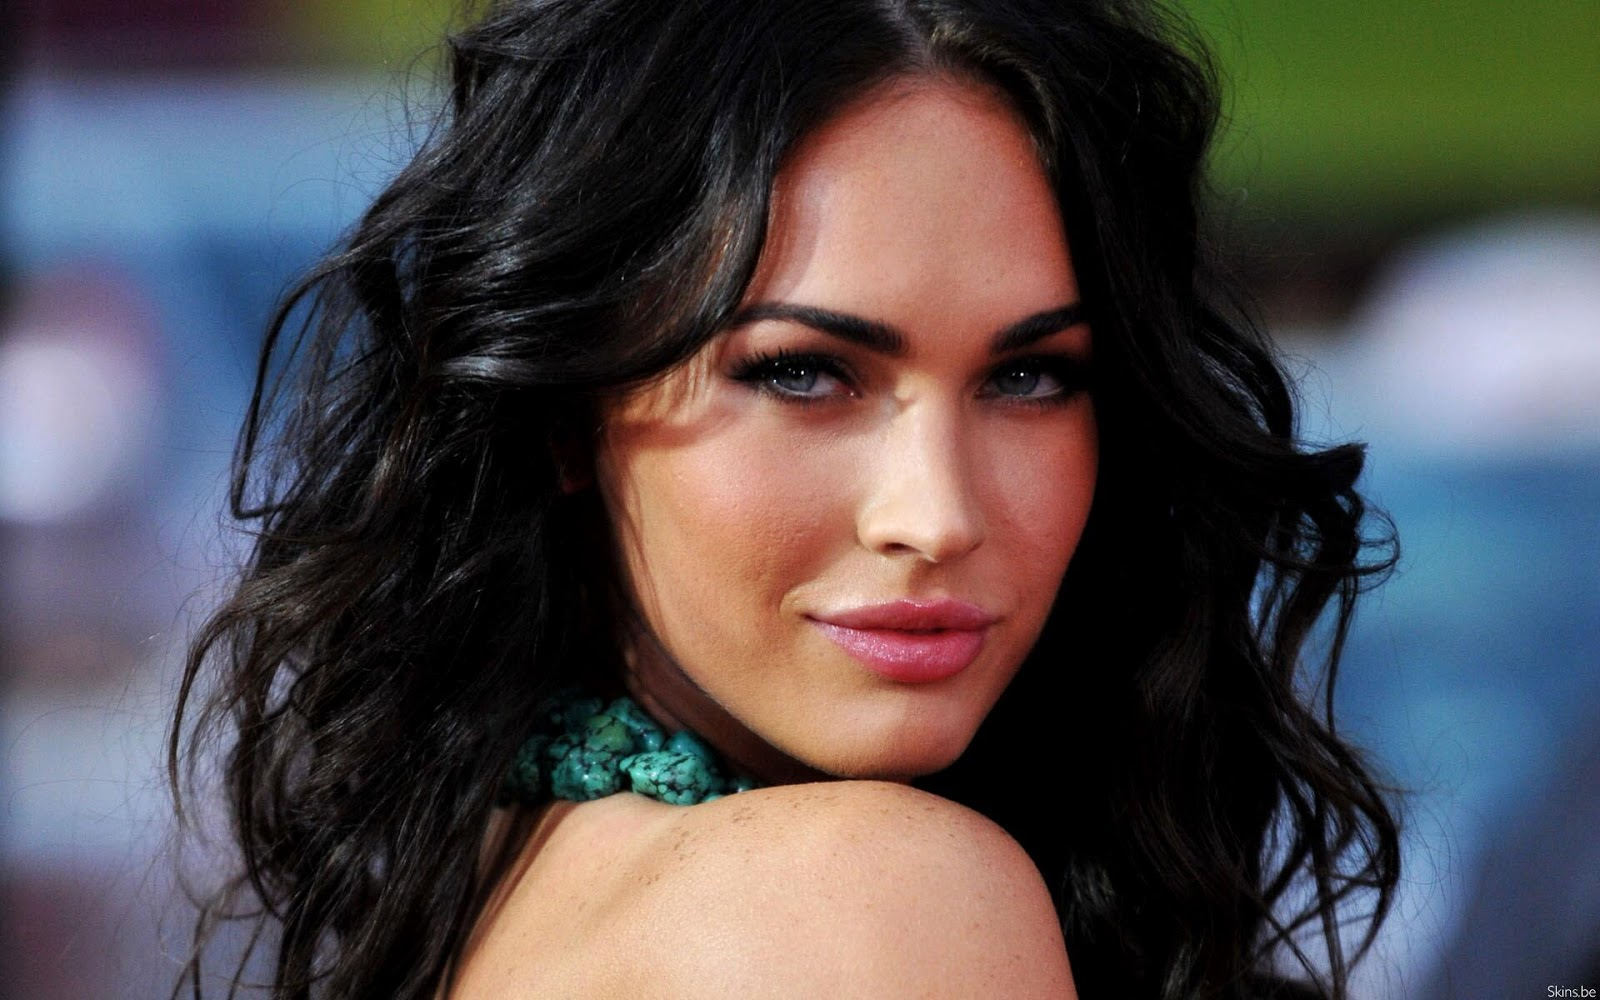 http://2.bp.blogspot.com/-P4FNJm7FR4Q/UV19ZMriVtI/AAAAAAAABvI/0q5nhZ3DIq8/s1600/Hottest+Actress+In+hollywood++Megan+Fox.jpg